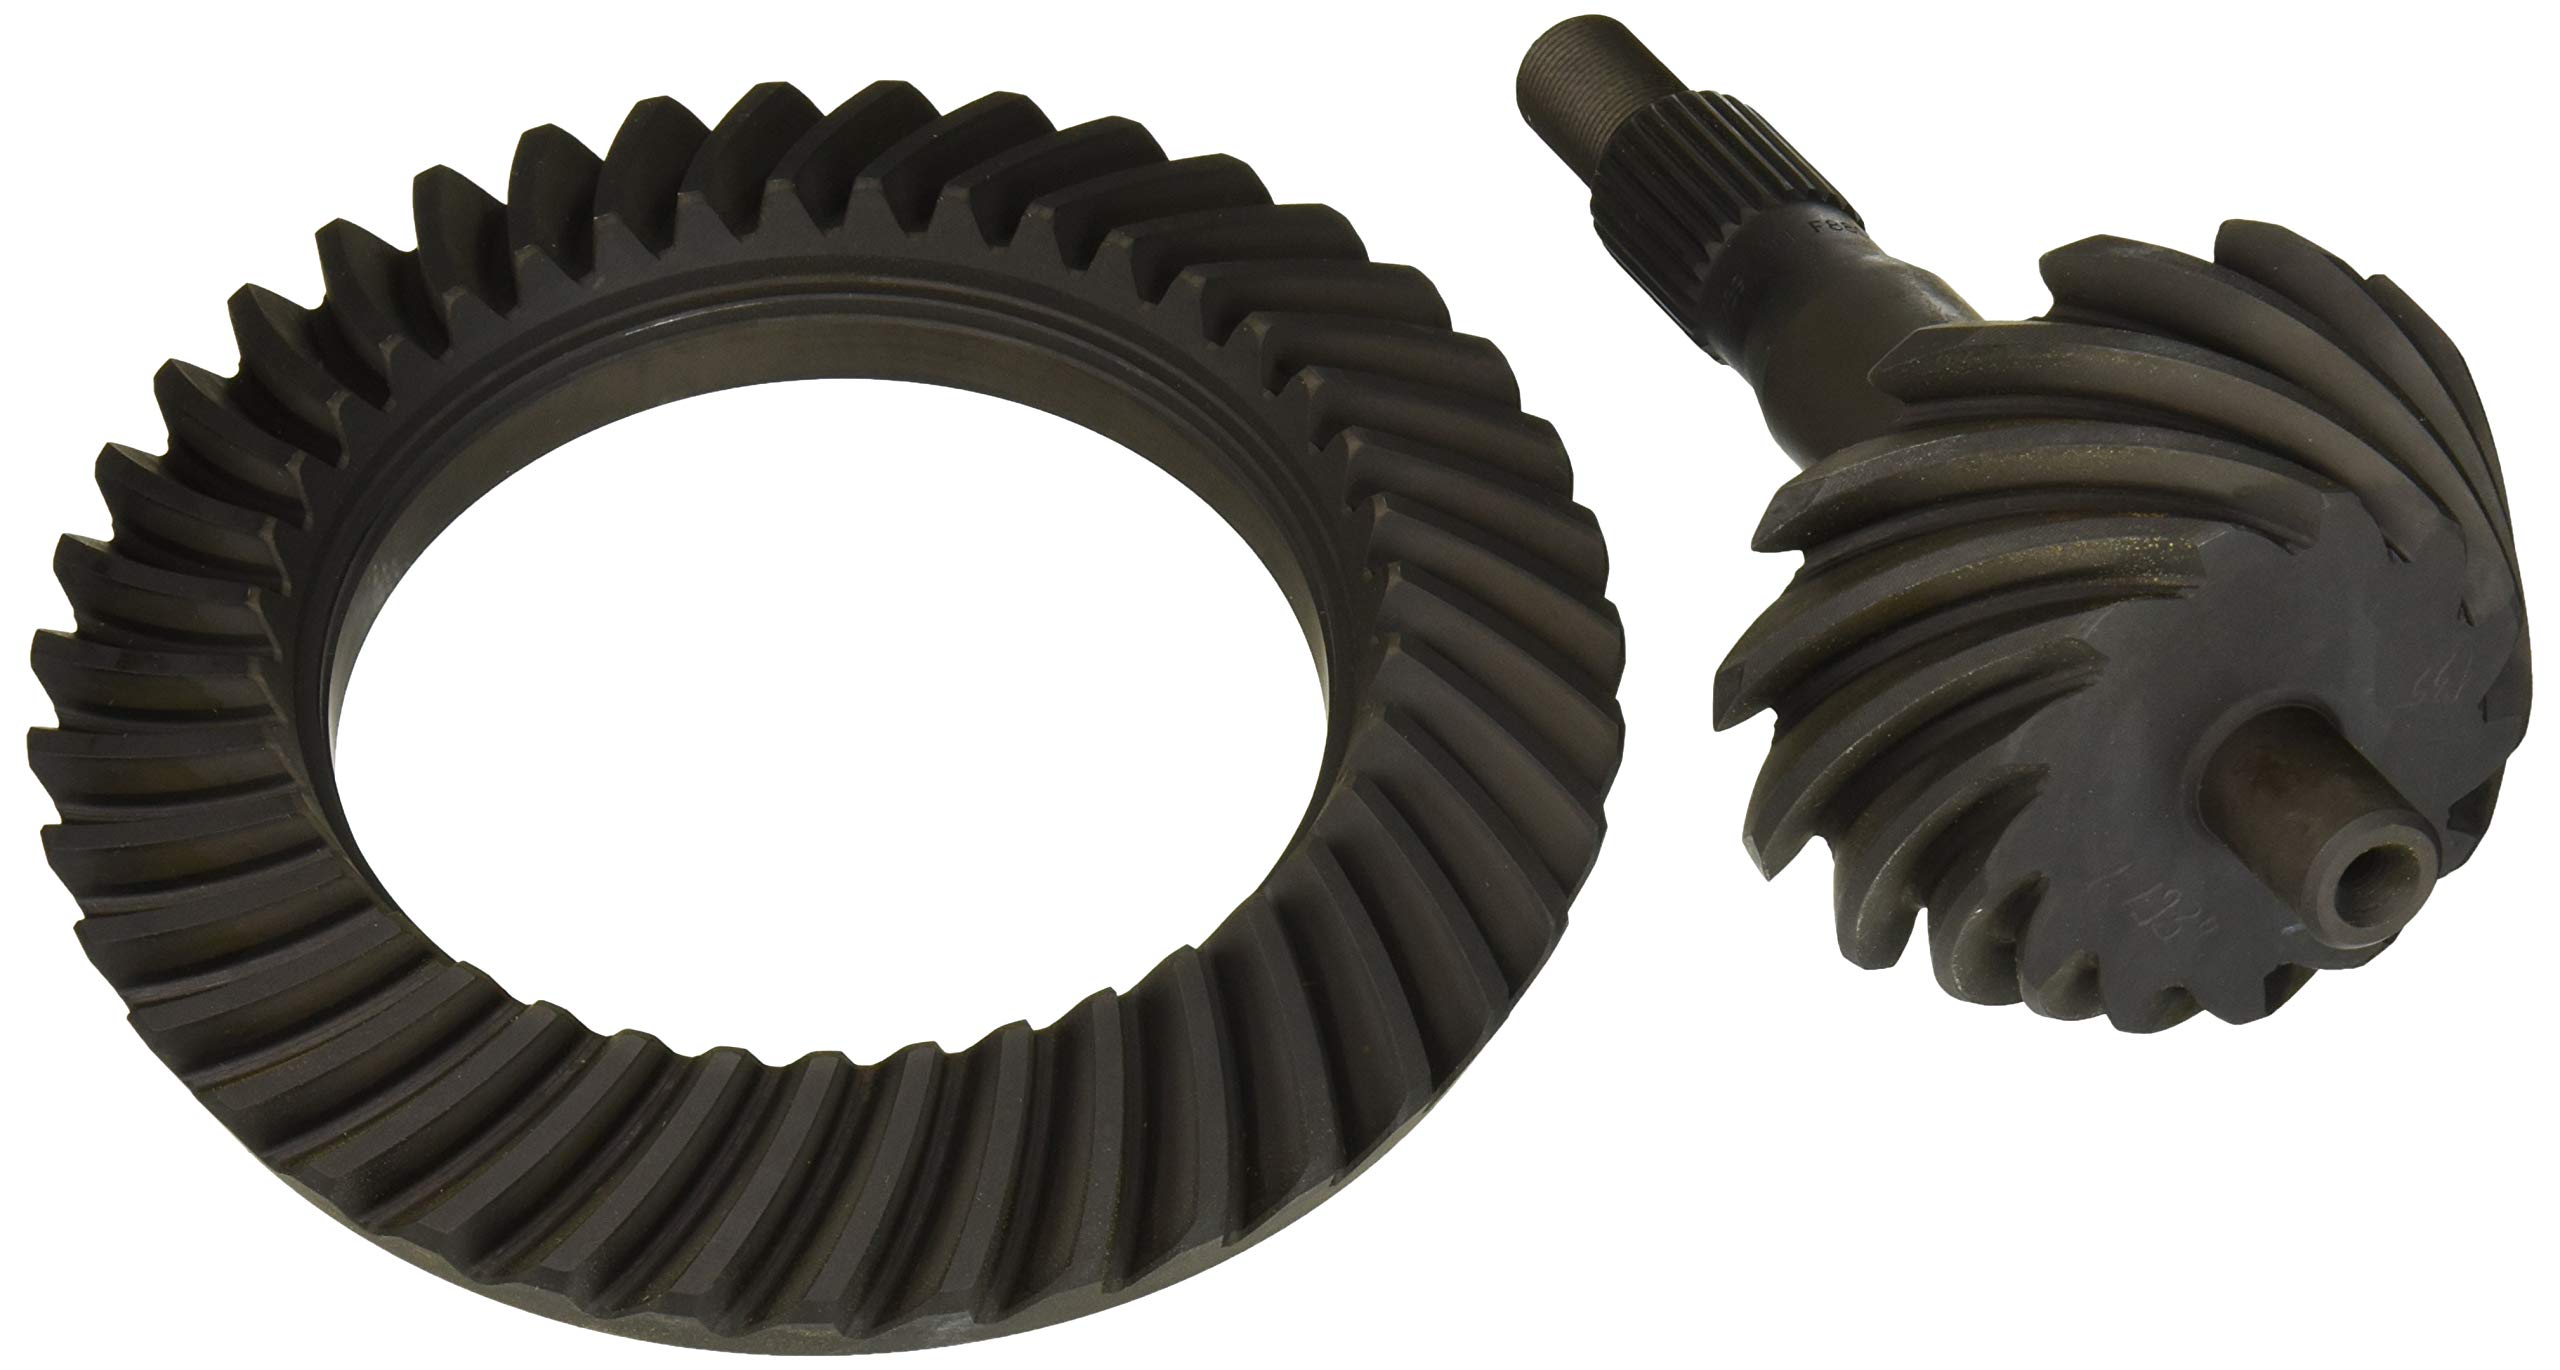 Motive Gear F880300 Rear Ring and Pinion for Ford (3.00 Ratio, 8 Dropout)